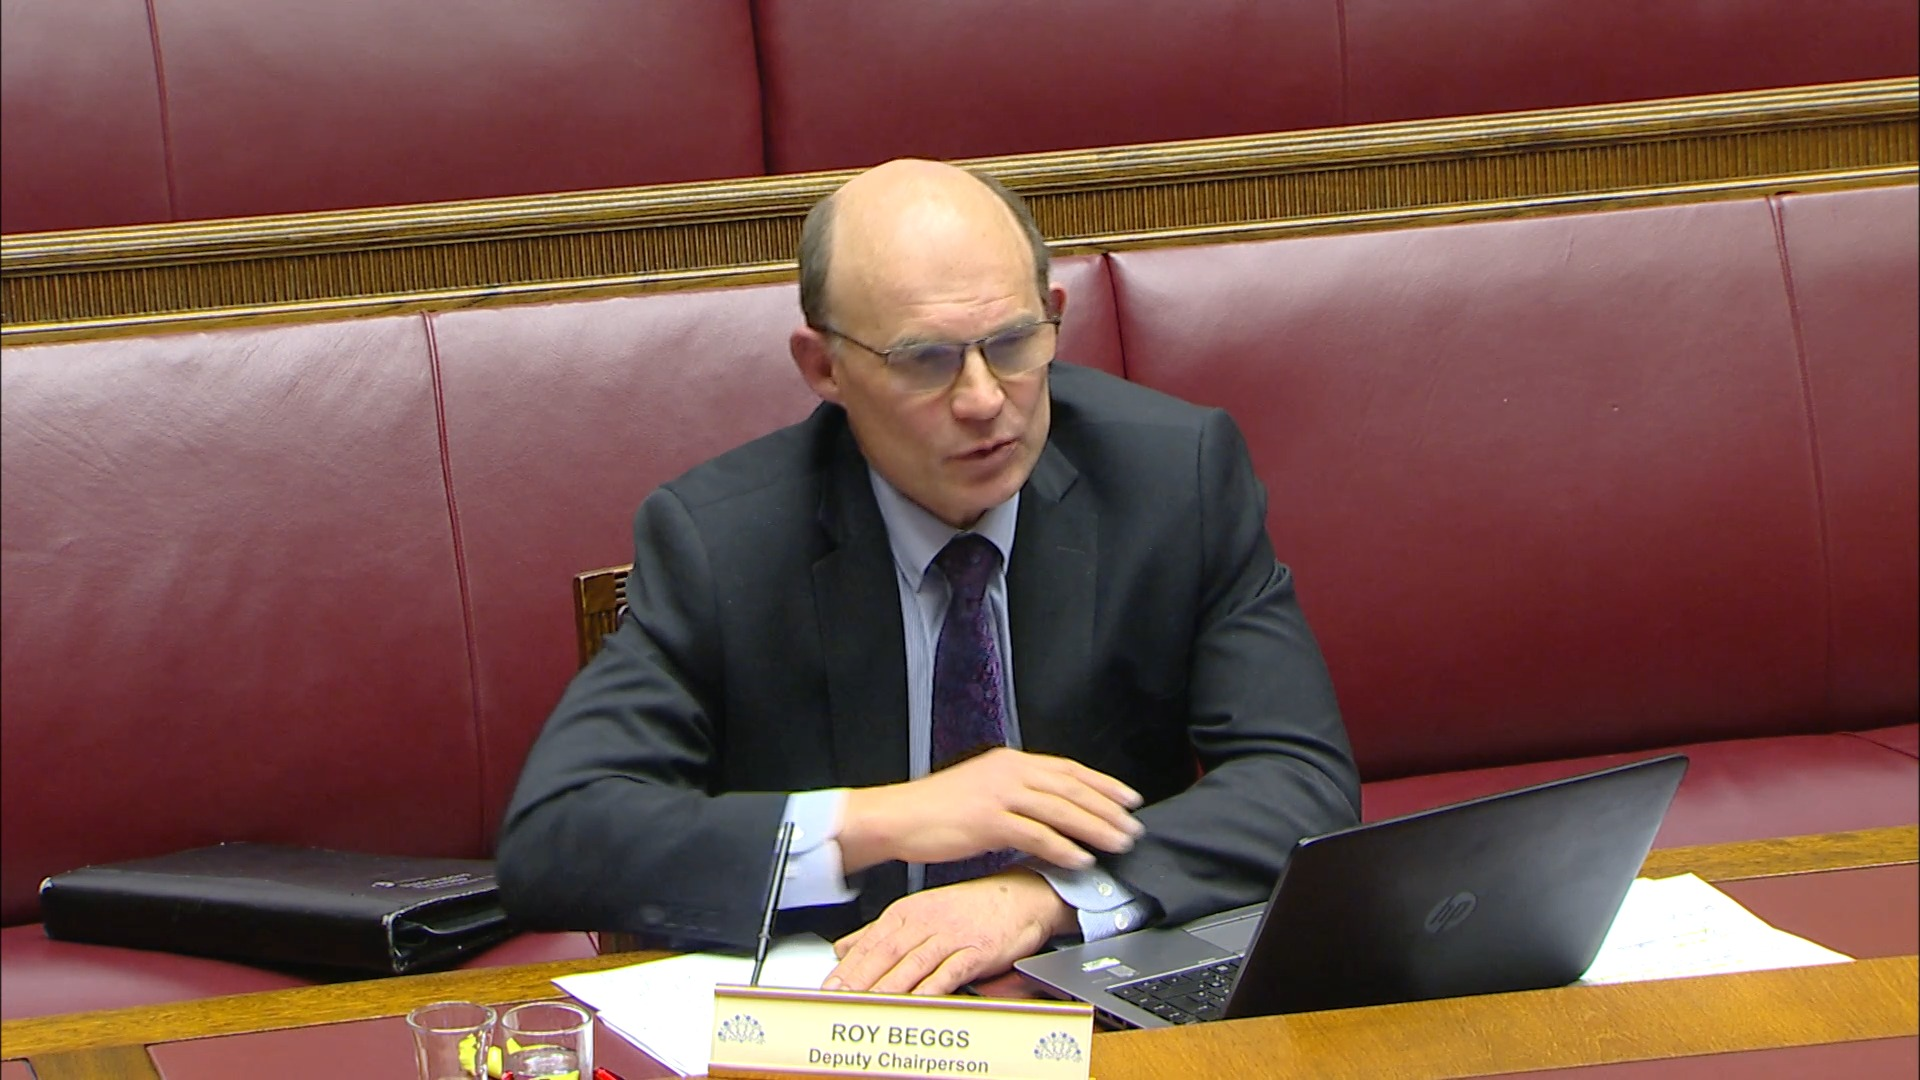 Public Accounts Committee Meeting - Thursday 19th November 2020